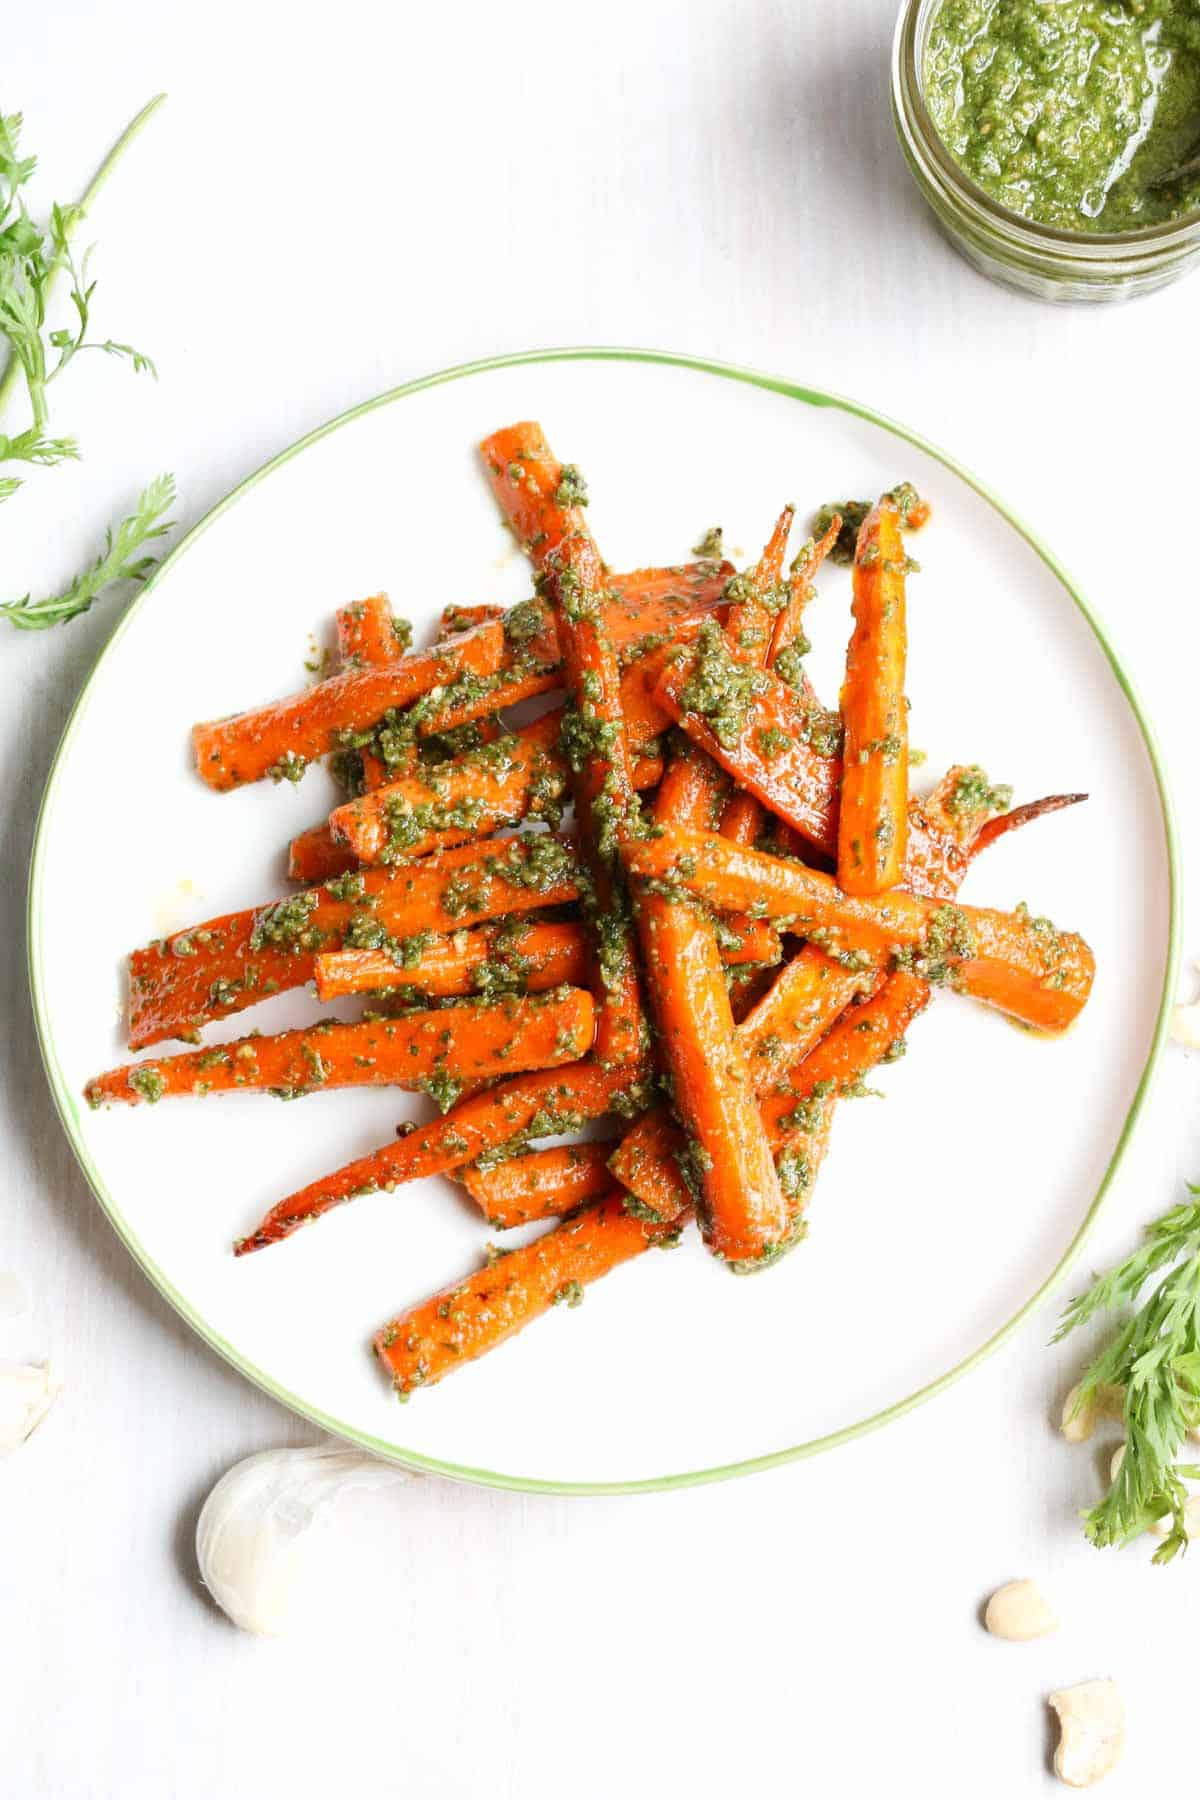 Cashew carrot top pesto with roasted carrots